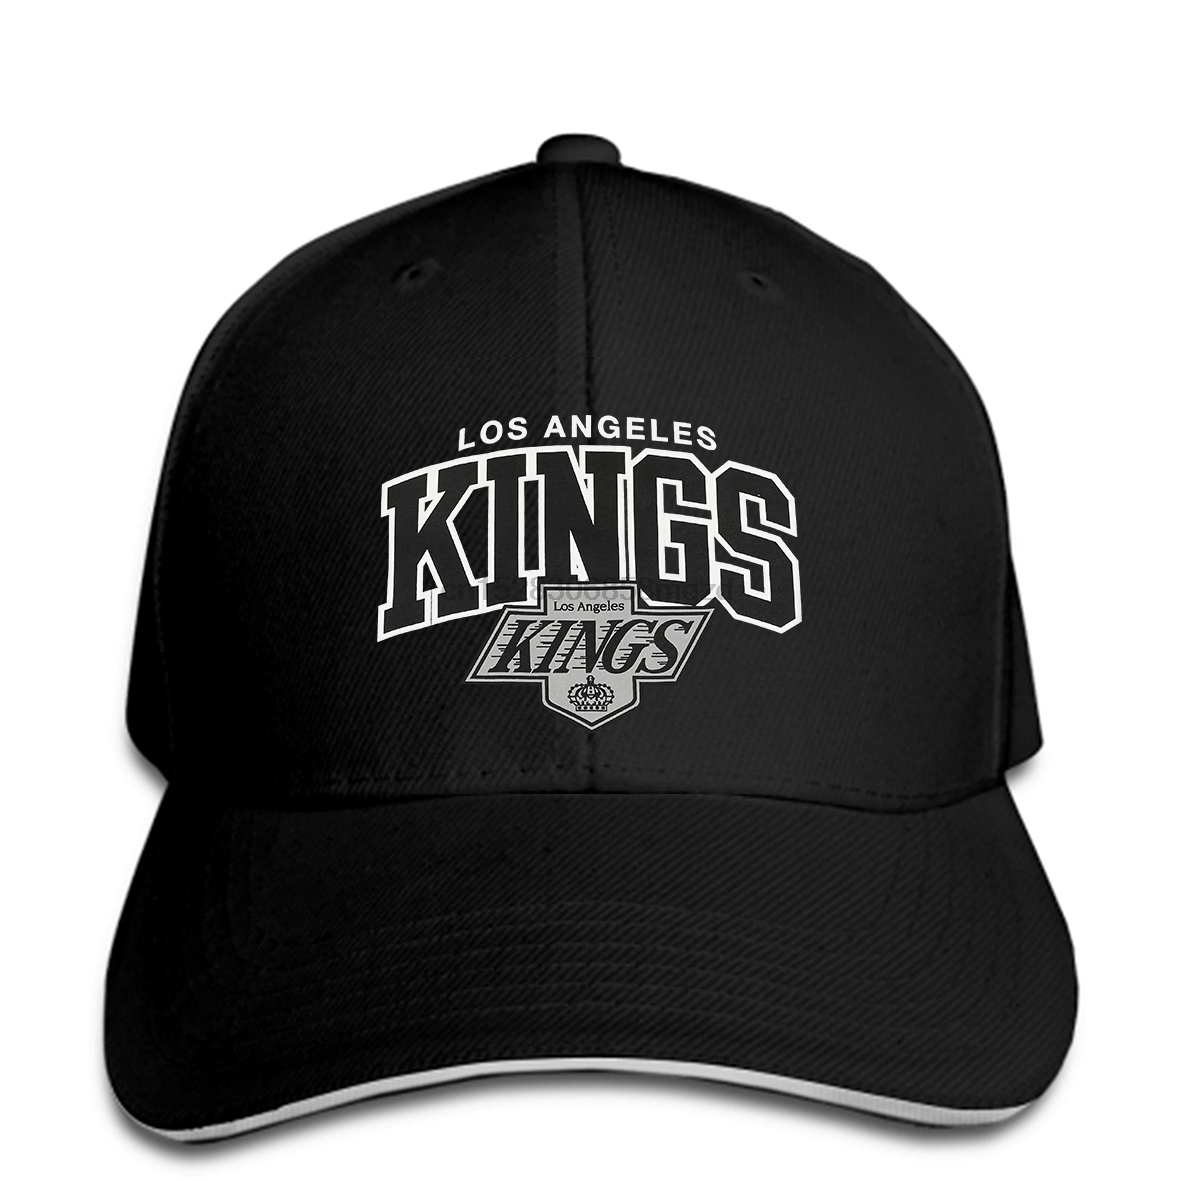 Mitchell & Ness Hat LA Kings Traditional Team Arch grey Snapback Cap Women Hat Peaked